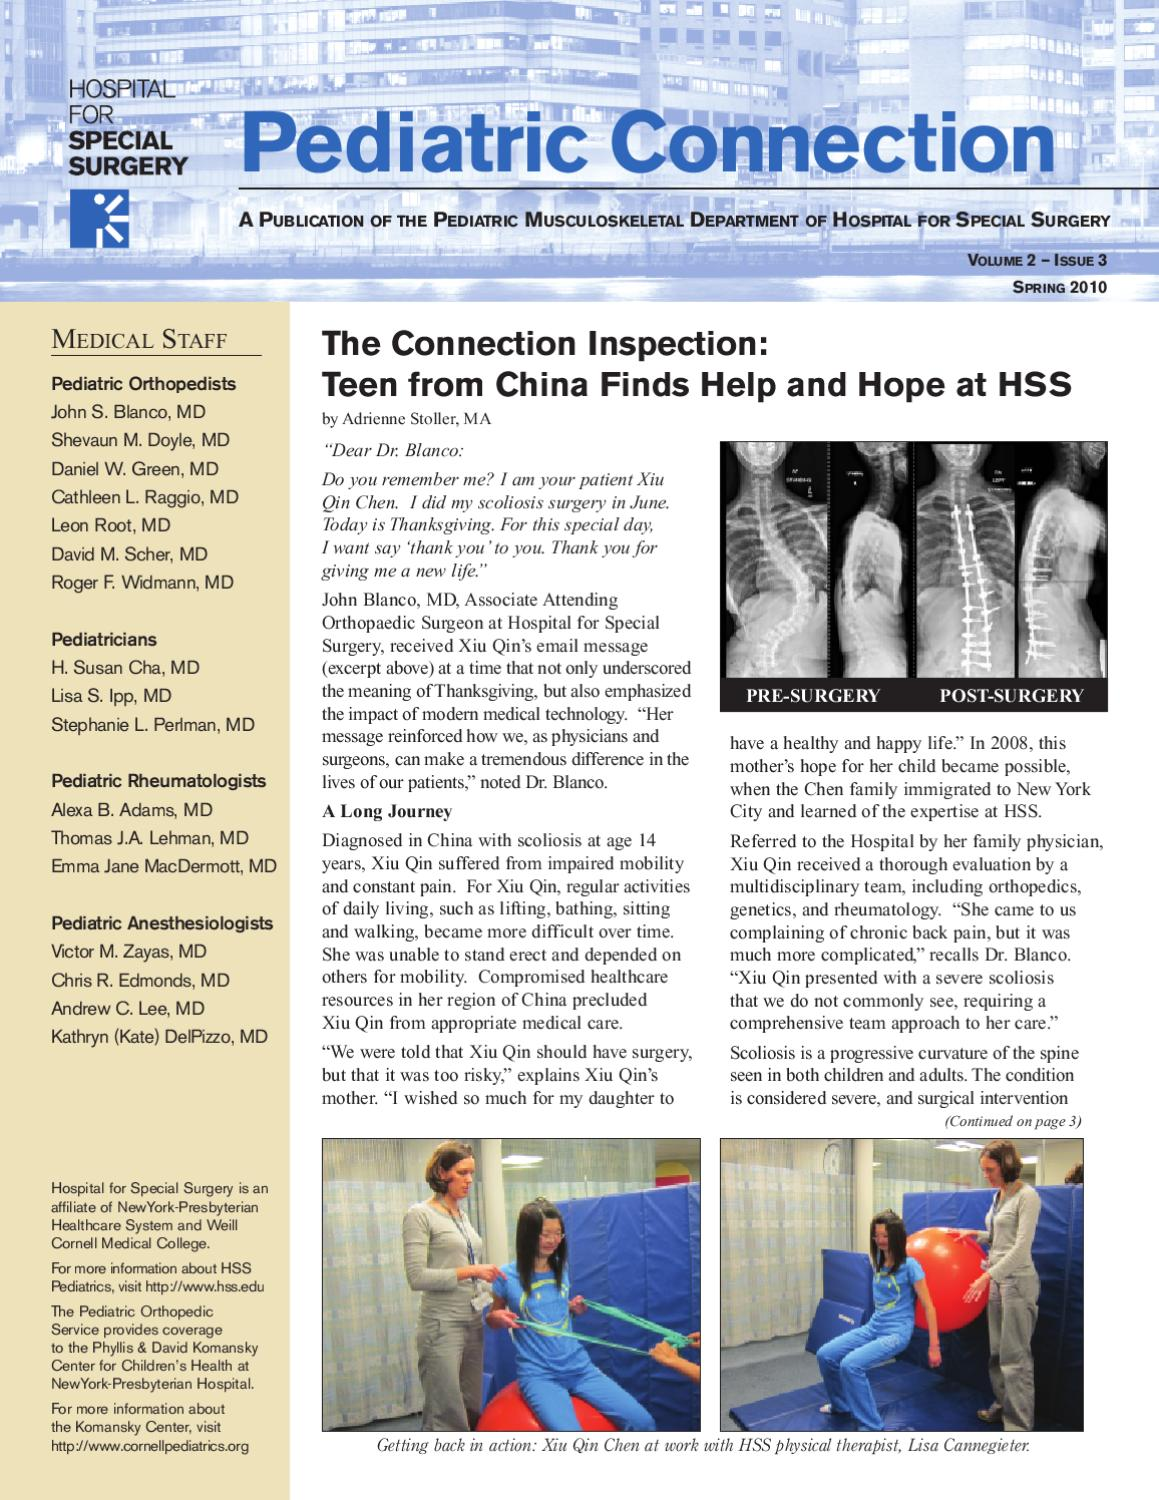 Spring 2010 HSS Pediatric Connection, Vol  2 Issue 3 by Hospital for